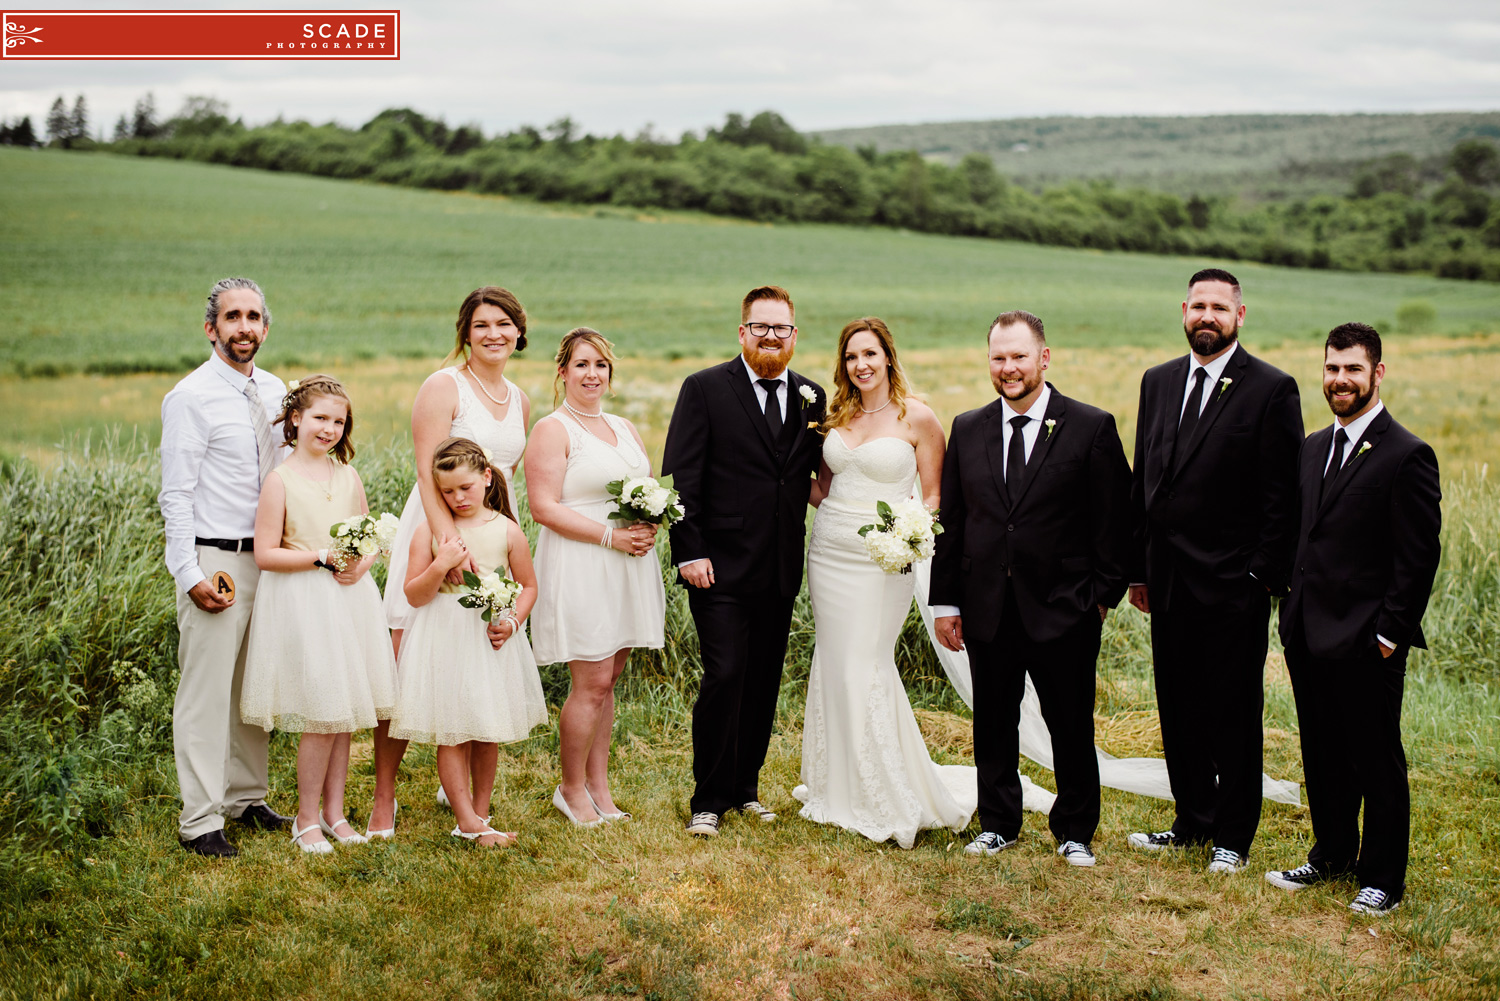 Nova Scotia Wedding Photography - Andi and David